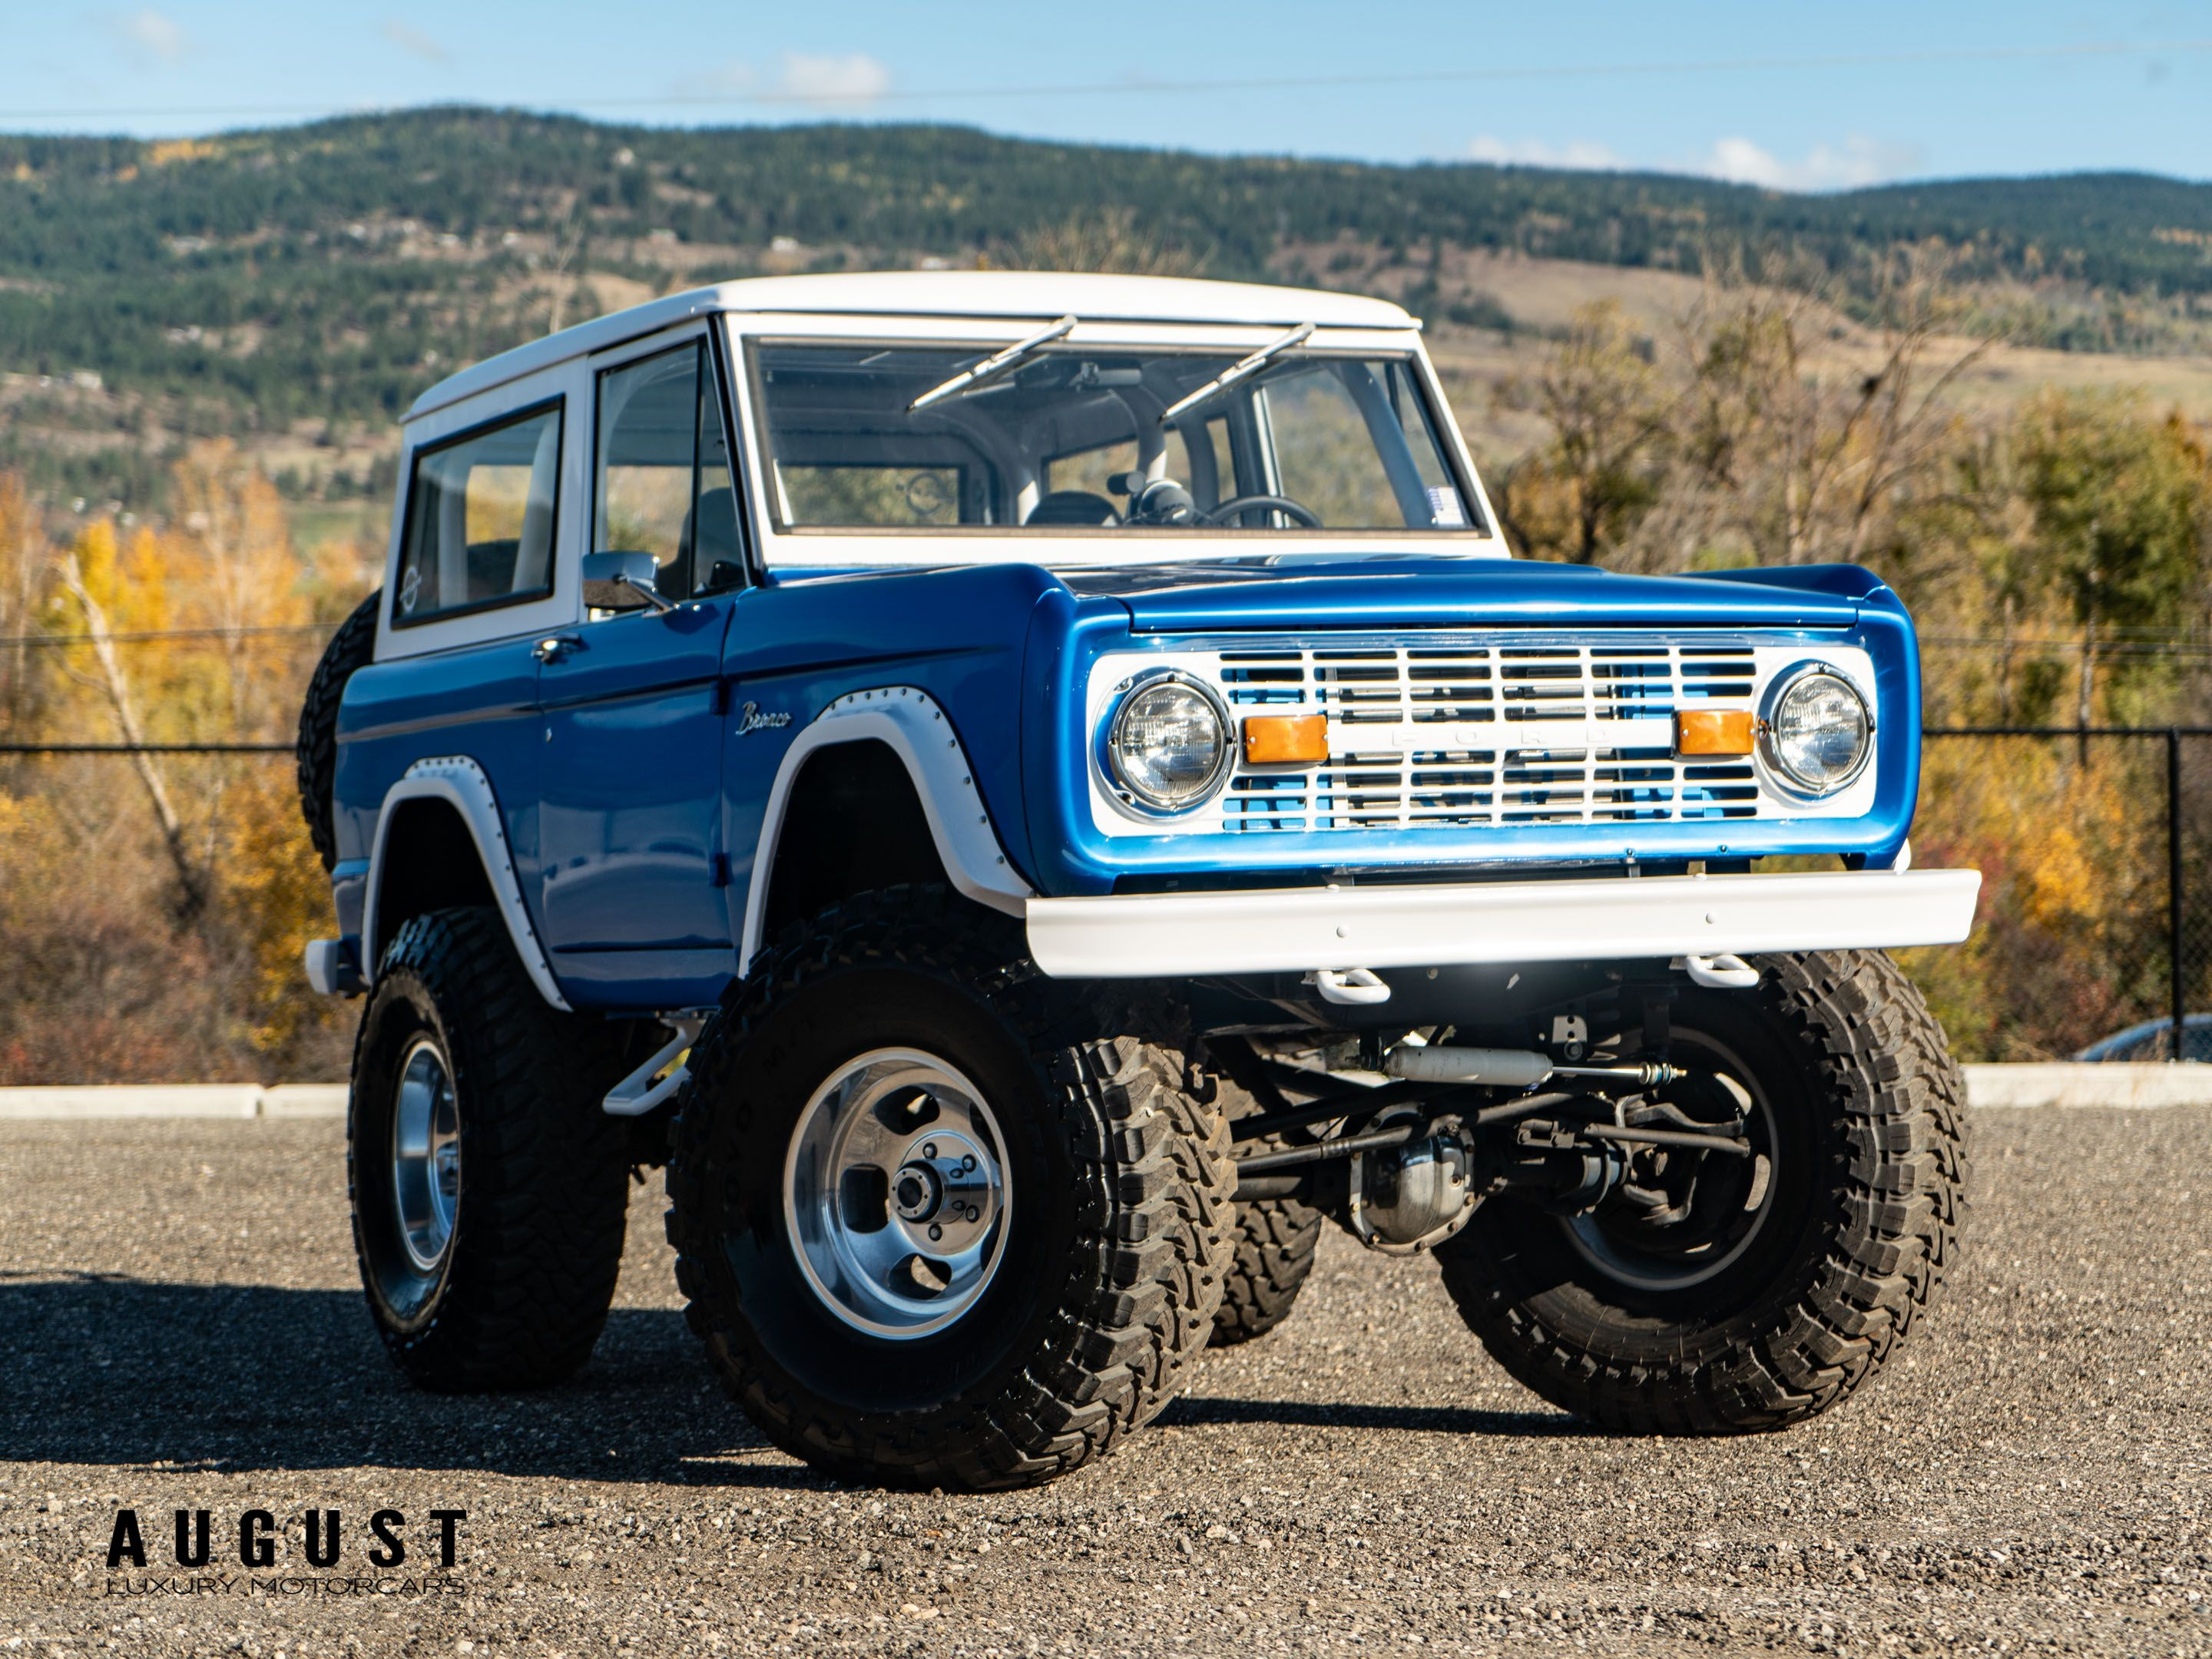 Pre-Owned 1974 Ford Bronco Farley Built